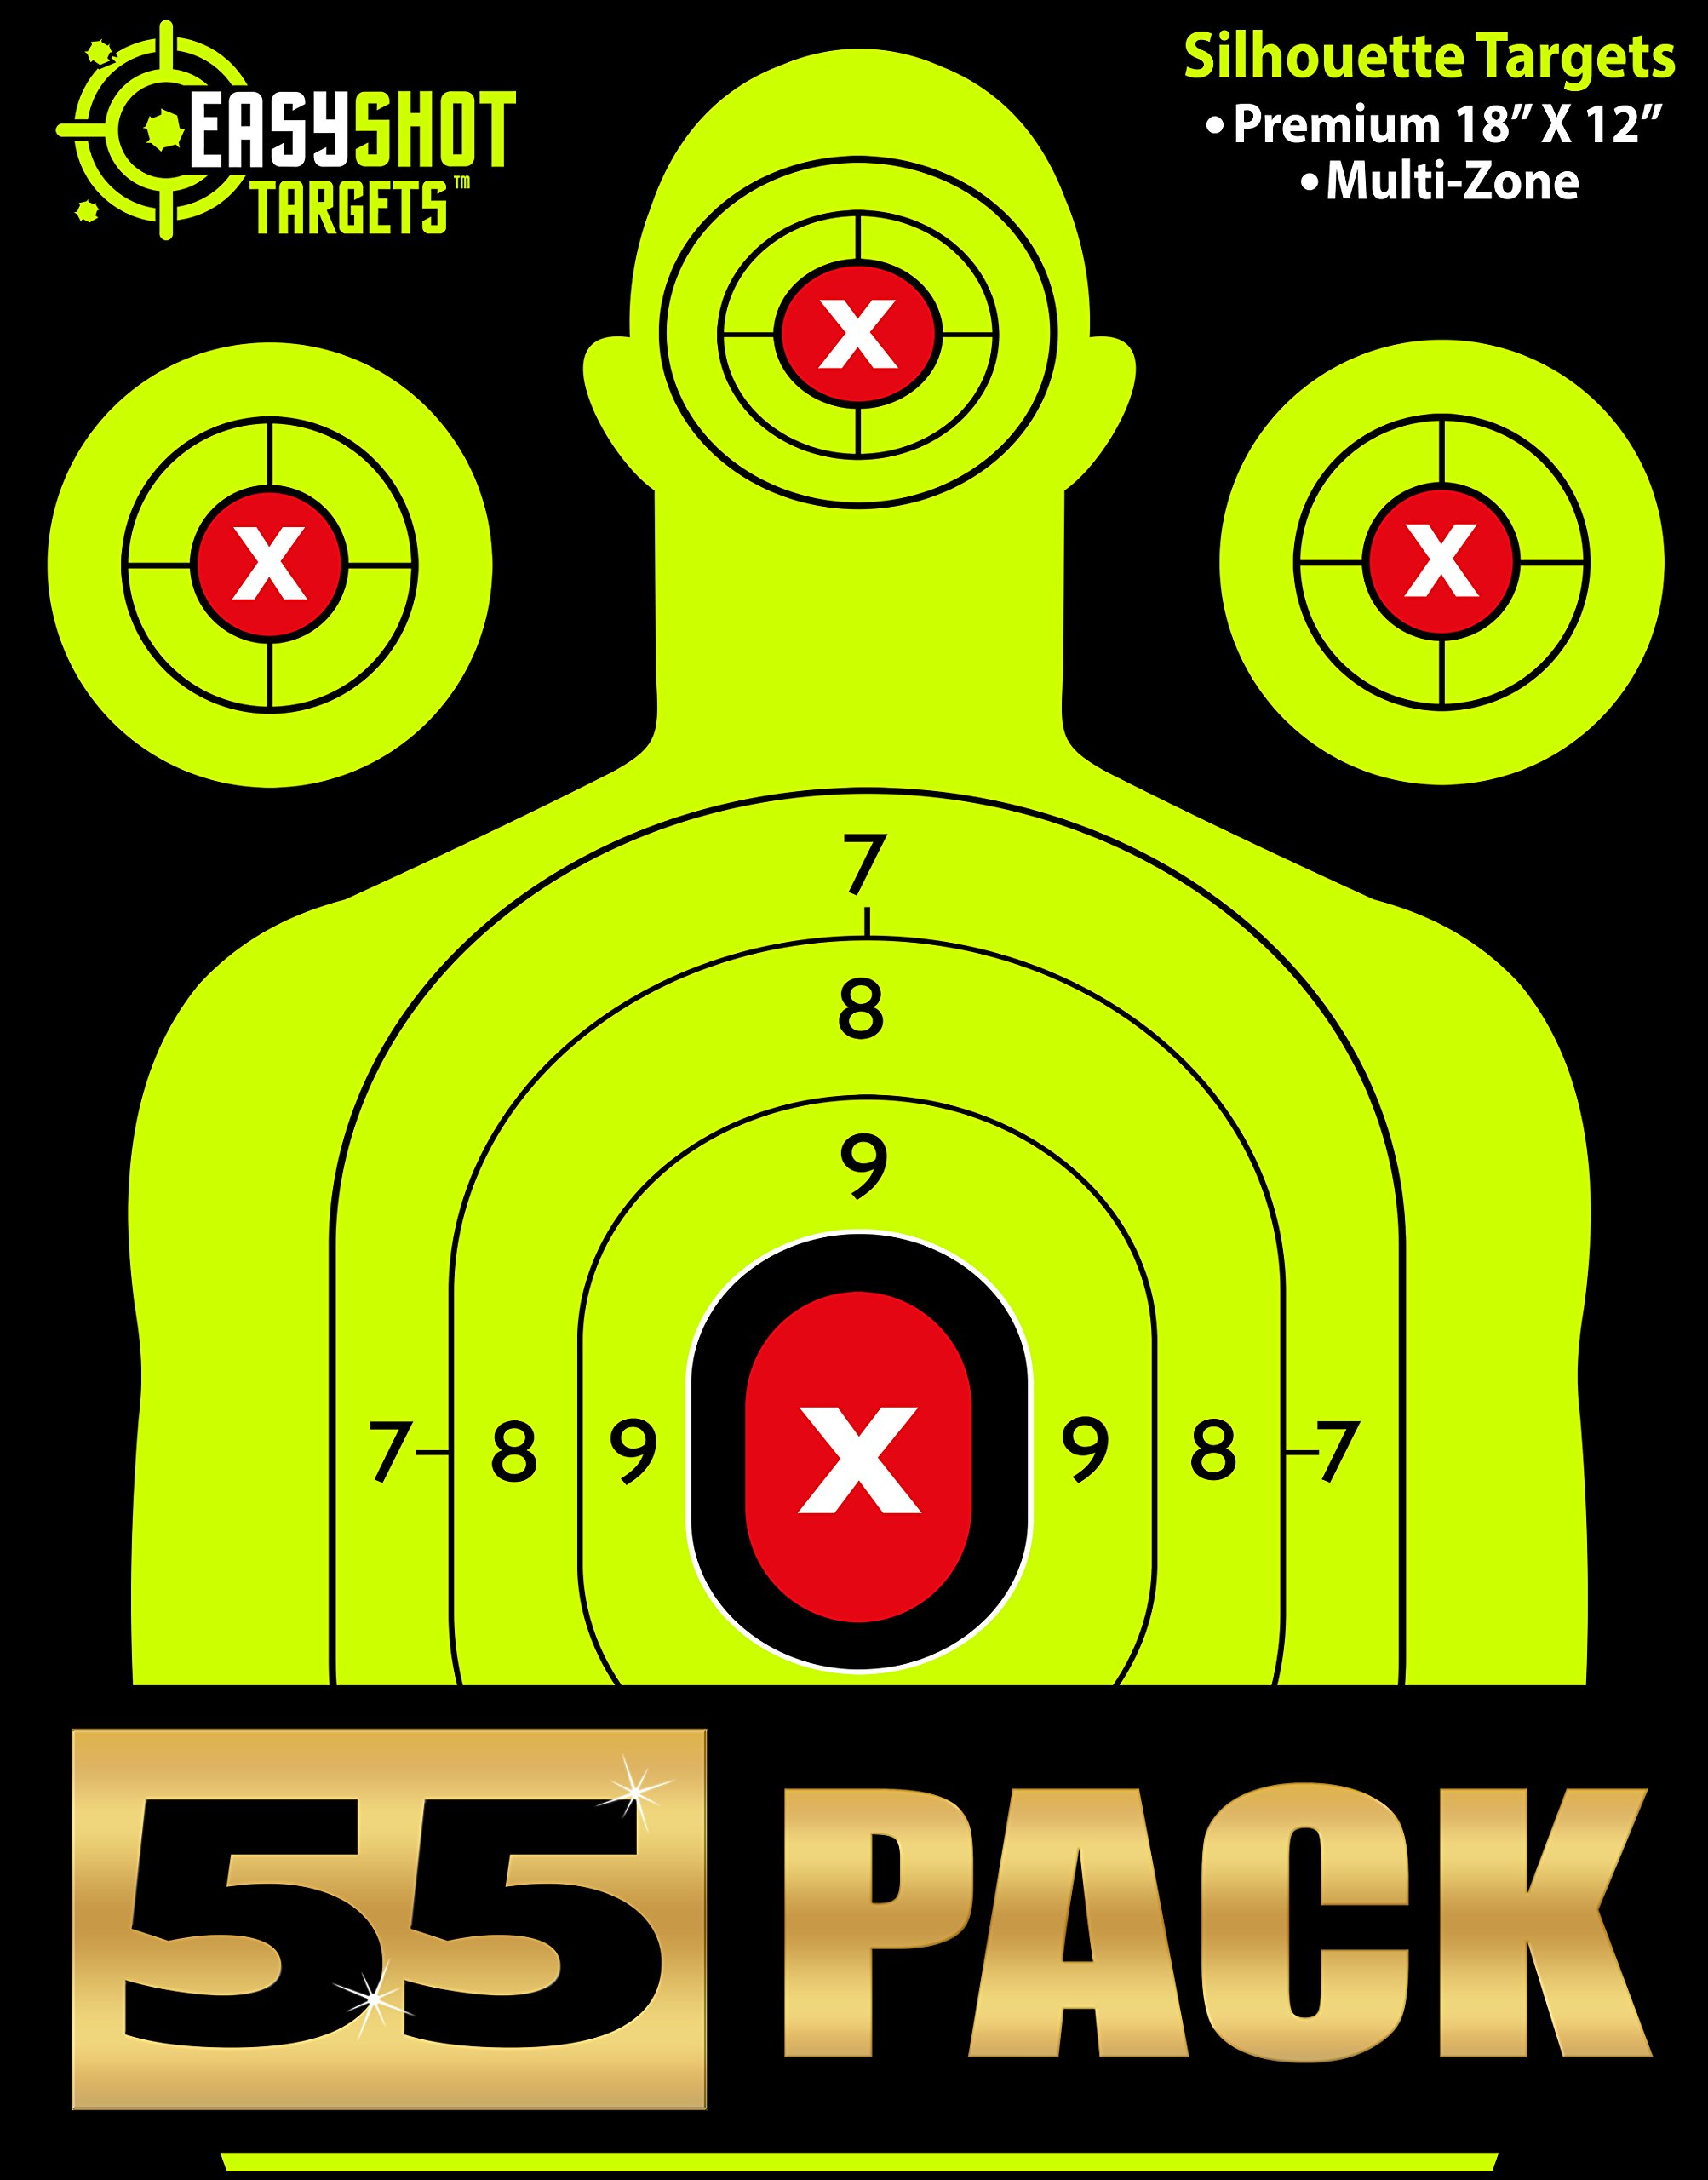 """""""55-Pack"""" EASYSHOT Shooting Targets 18 X 12 inch. Shots are Easy to See with Our High-Vis Neon Yellow & Red Colors. Thick Silhouette Paper Sheets for Pistols, Rifles, BB Guns, Airsoft & More."""